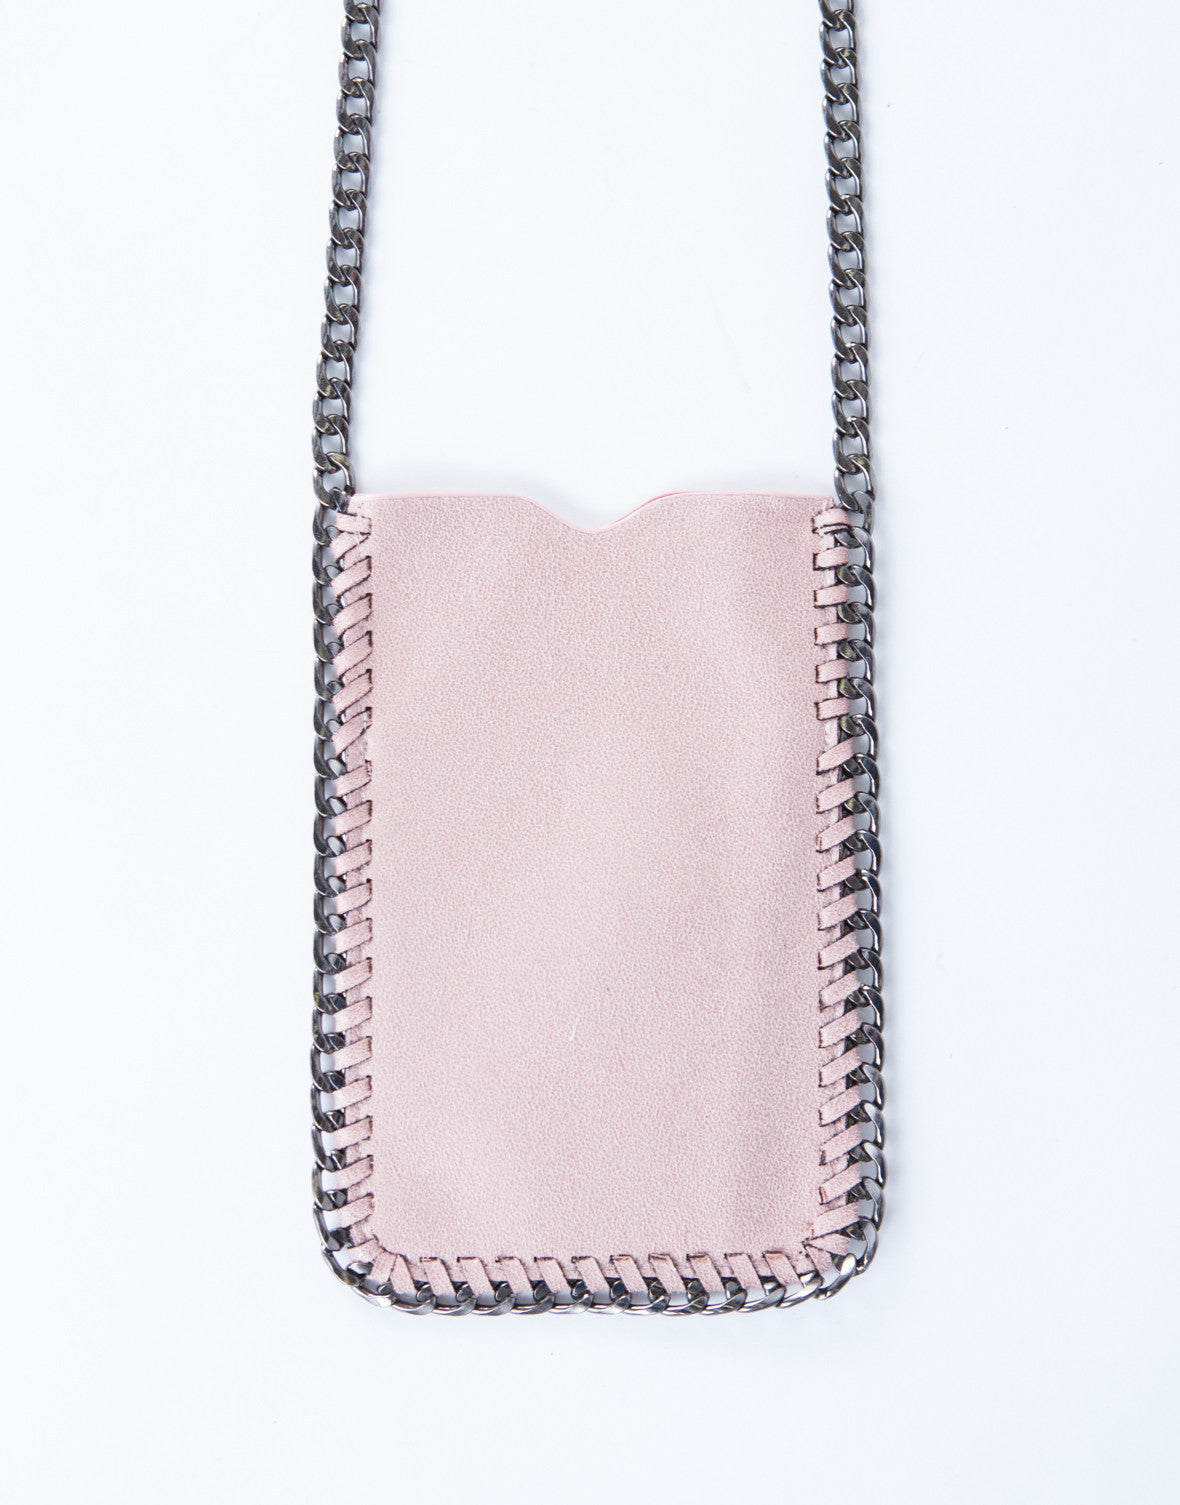 Chained Cell Phone Bag